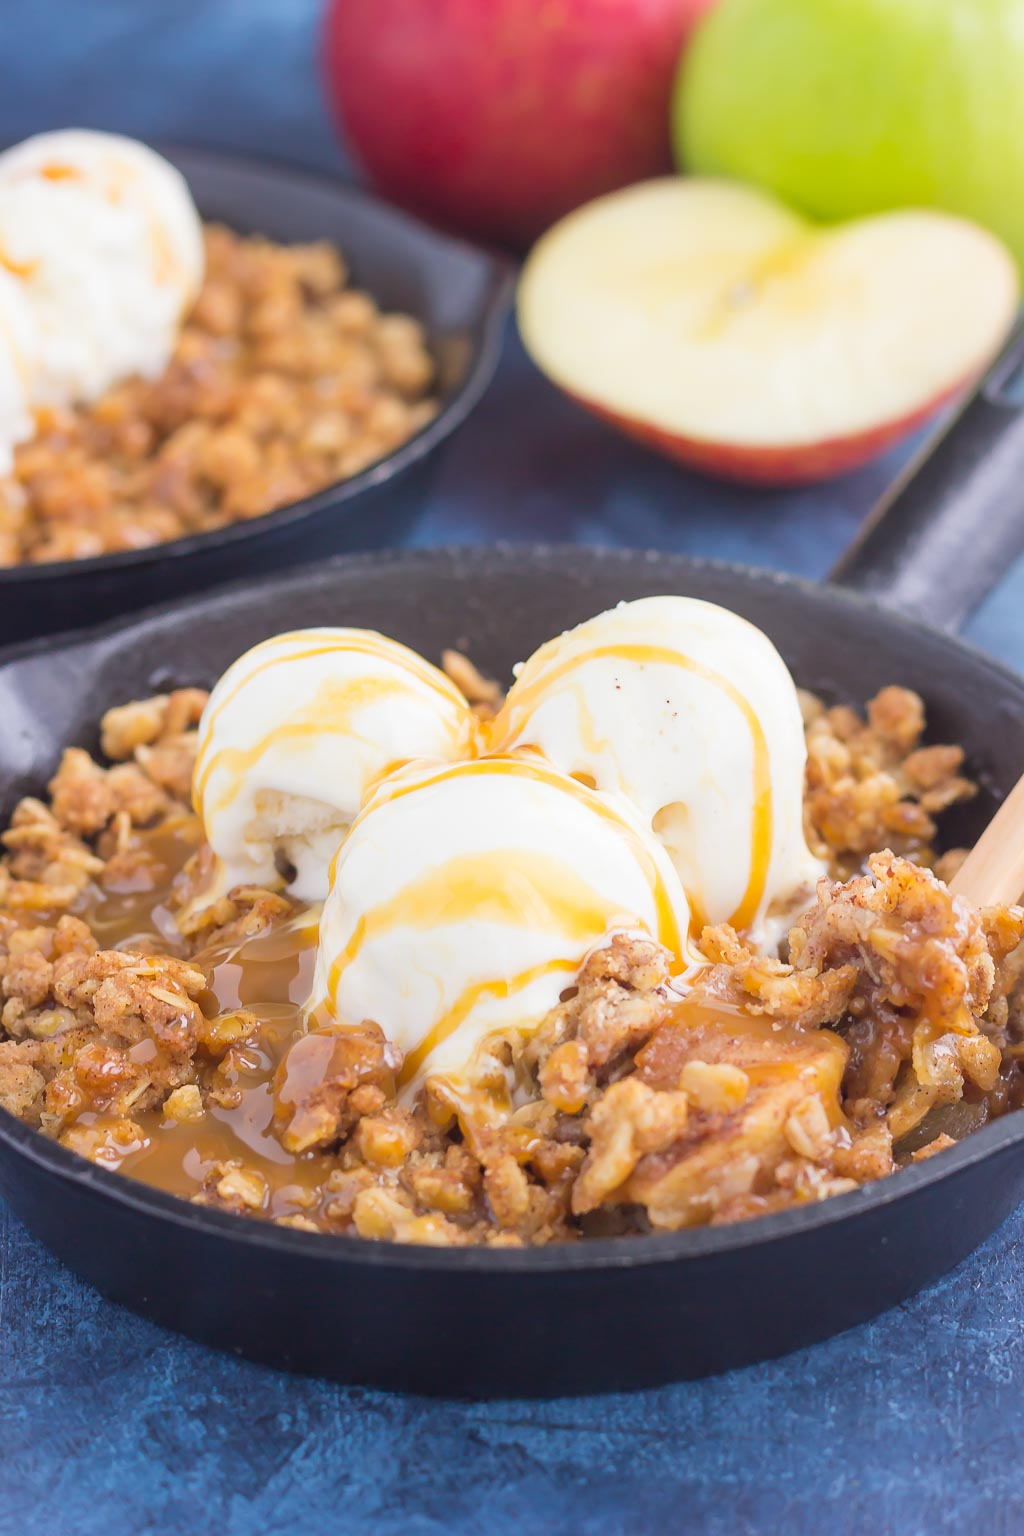 This Caramel Apple Crisp is a simple, cozy fall dessert that's ready in no time. Packed with tender apples, a rich caramel sauce, and a buttery, brown sugar topping, this dish makes the perfect sweet treat, especially when served with a big scoop of vanilla ice cream!